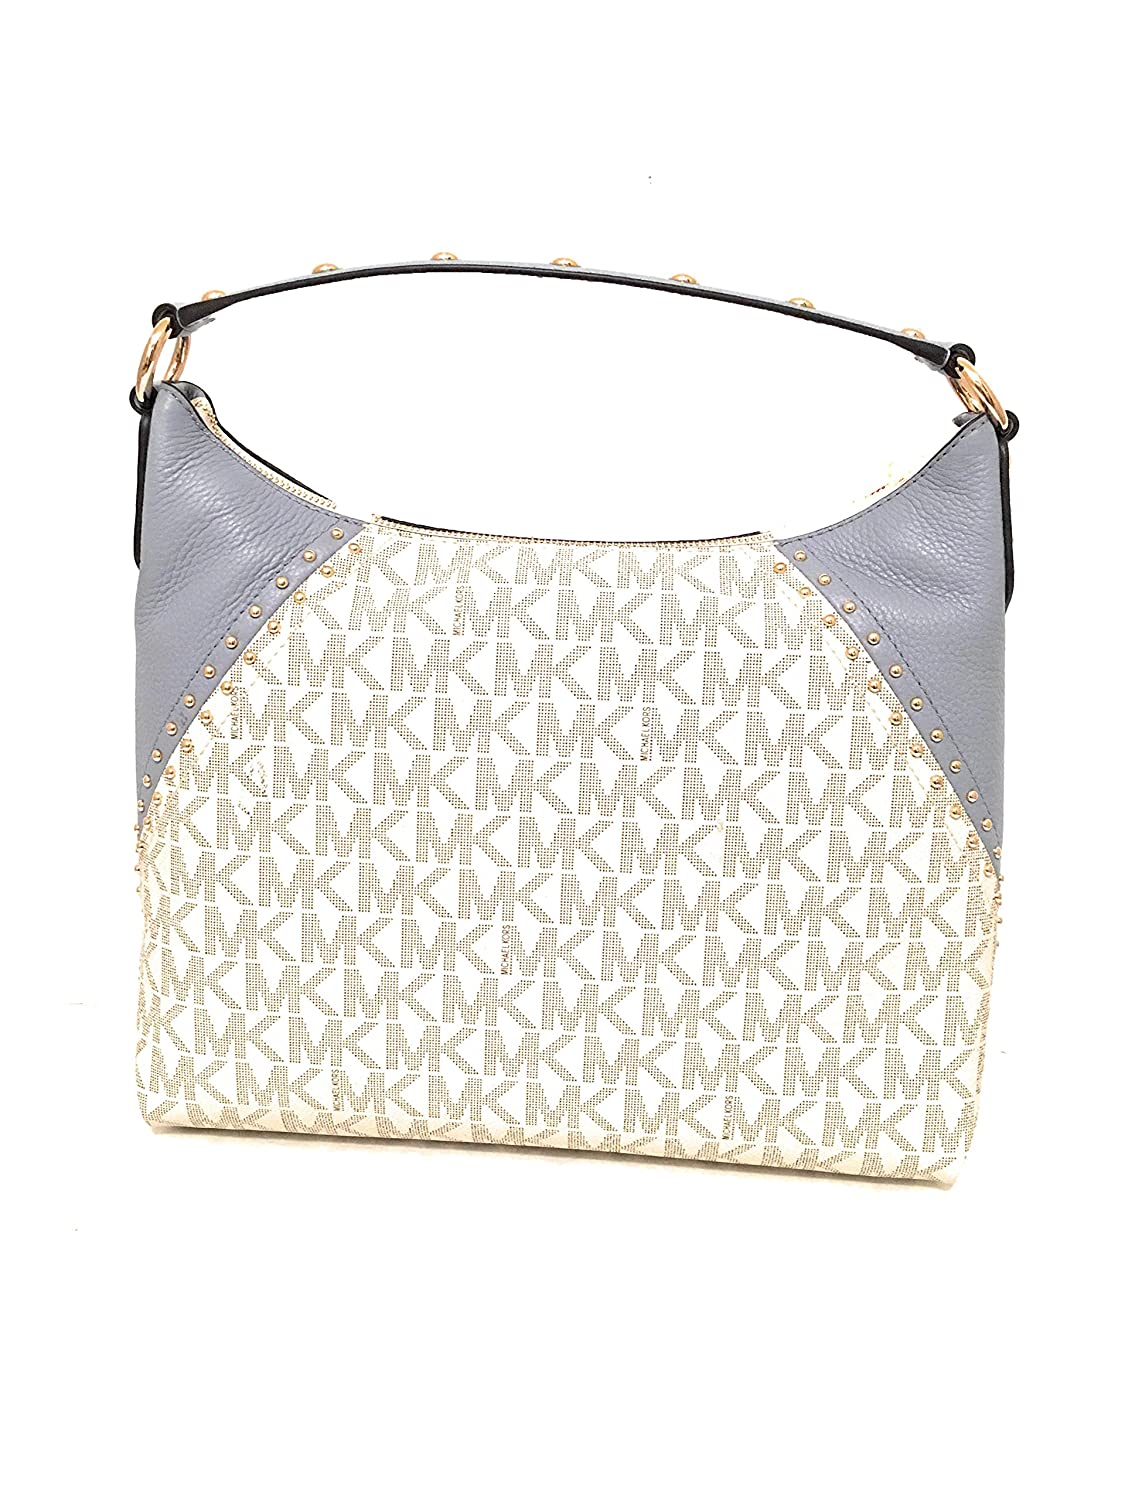 47c89a92d04e Michael Kors Aria Medium Monogram Signature Vanilla/Pale Blue Pvc/Leather Shoulder  Bag (35S8GXAL2B): Handbags: Amazon.com